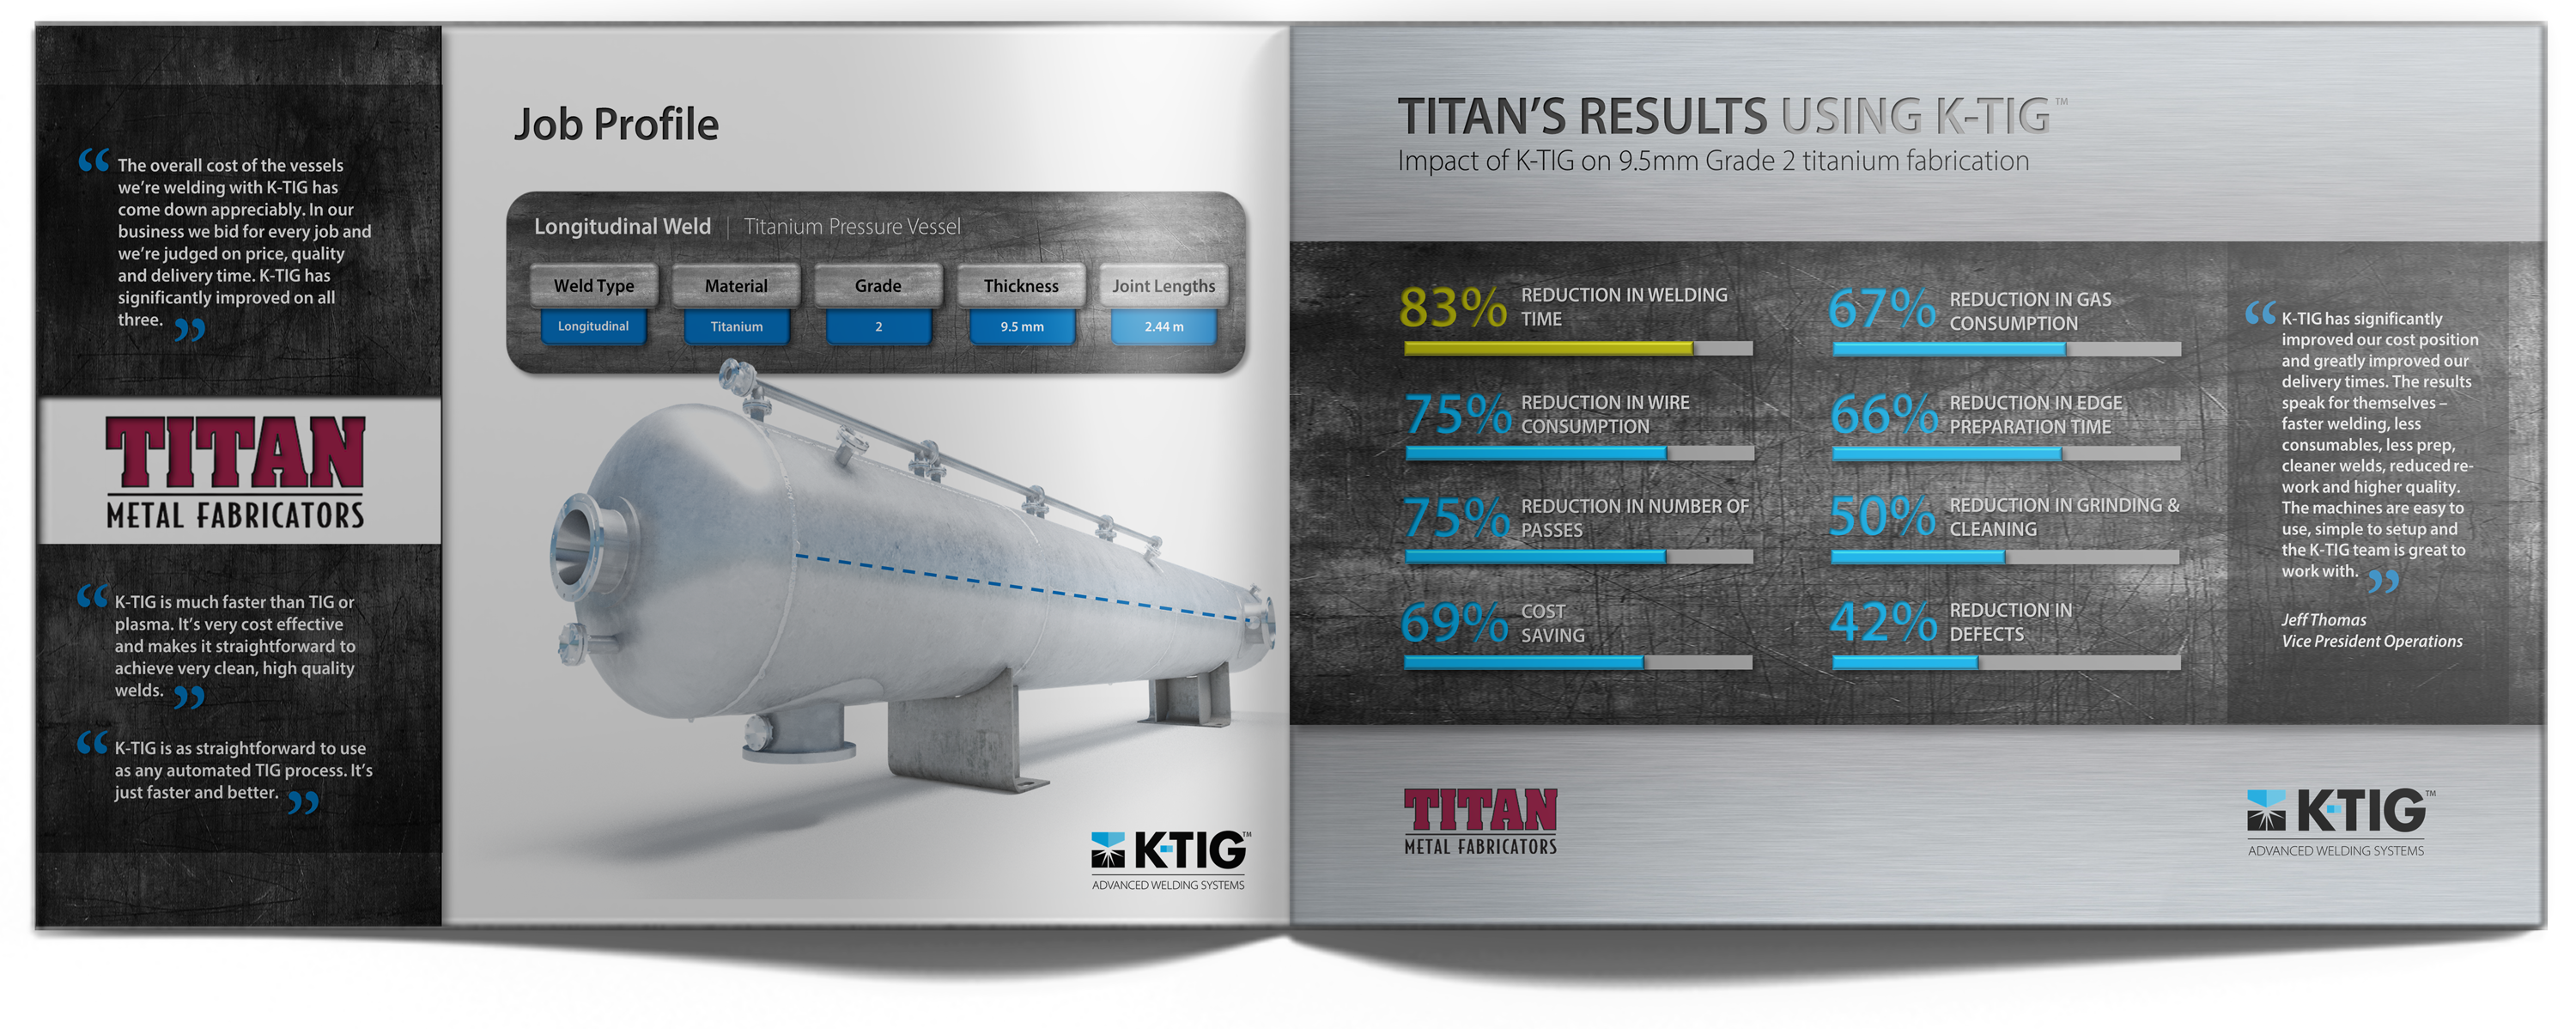 TITAN Case Study Results